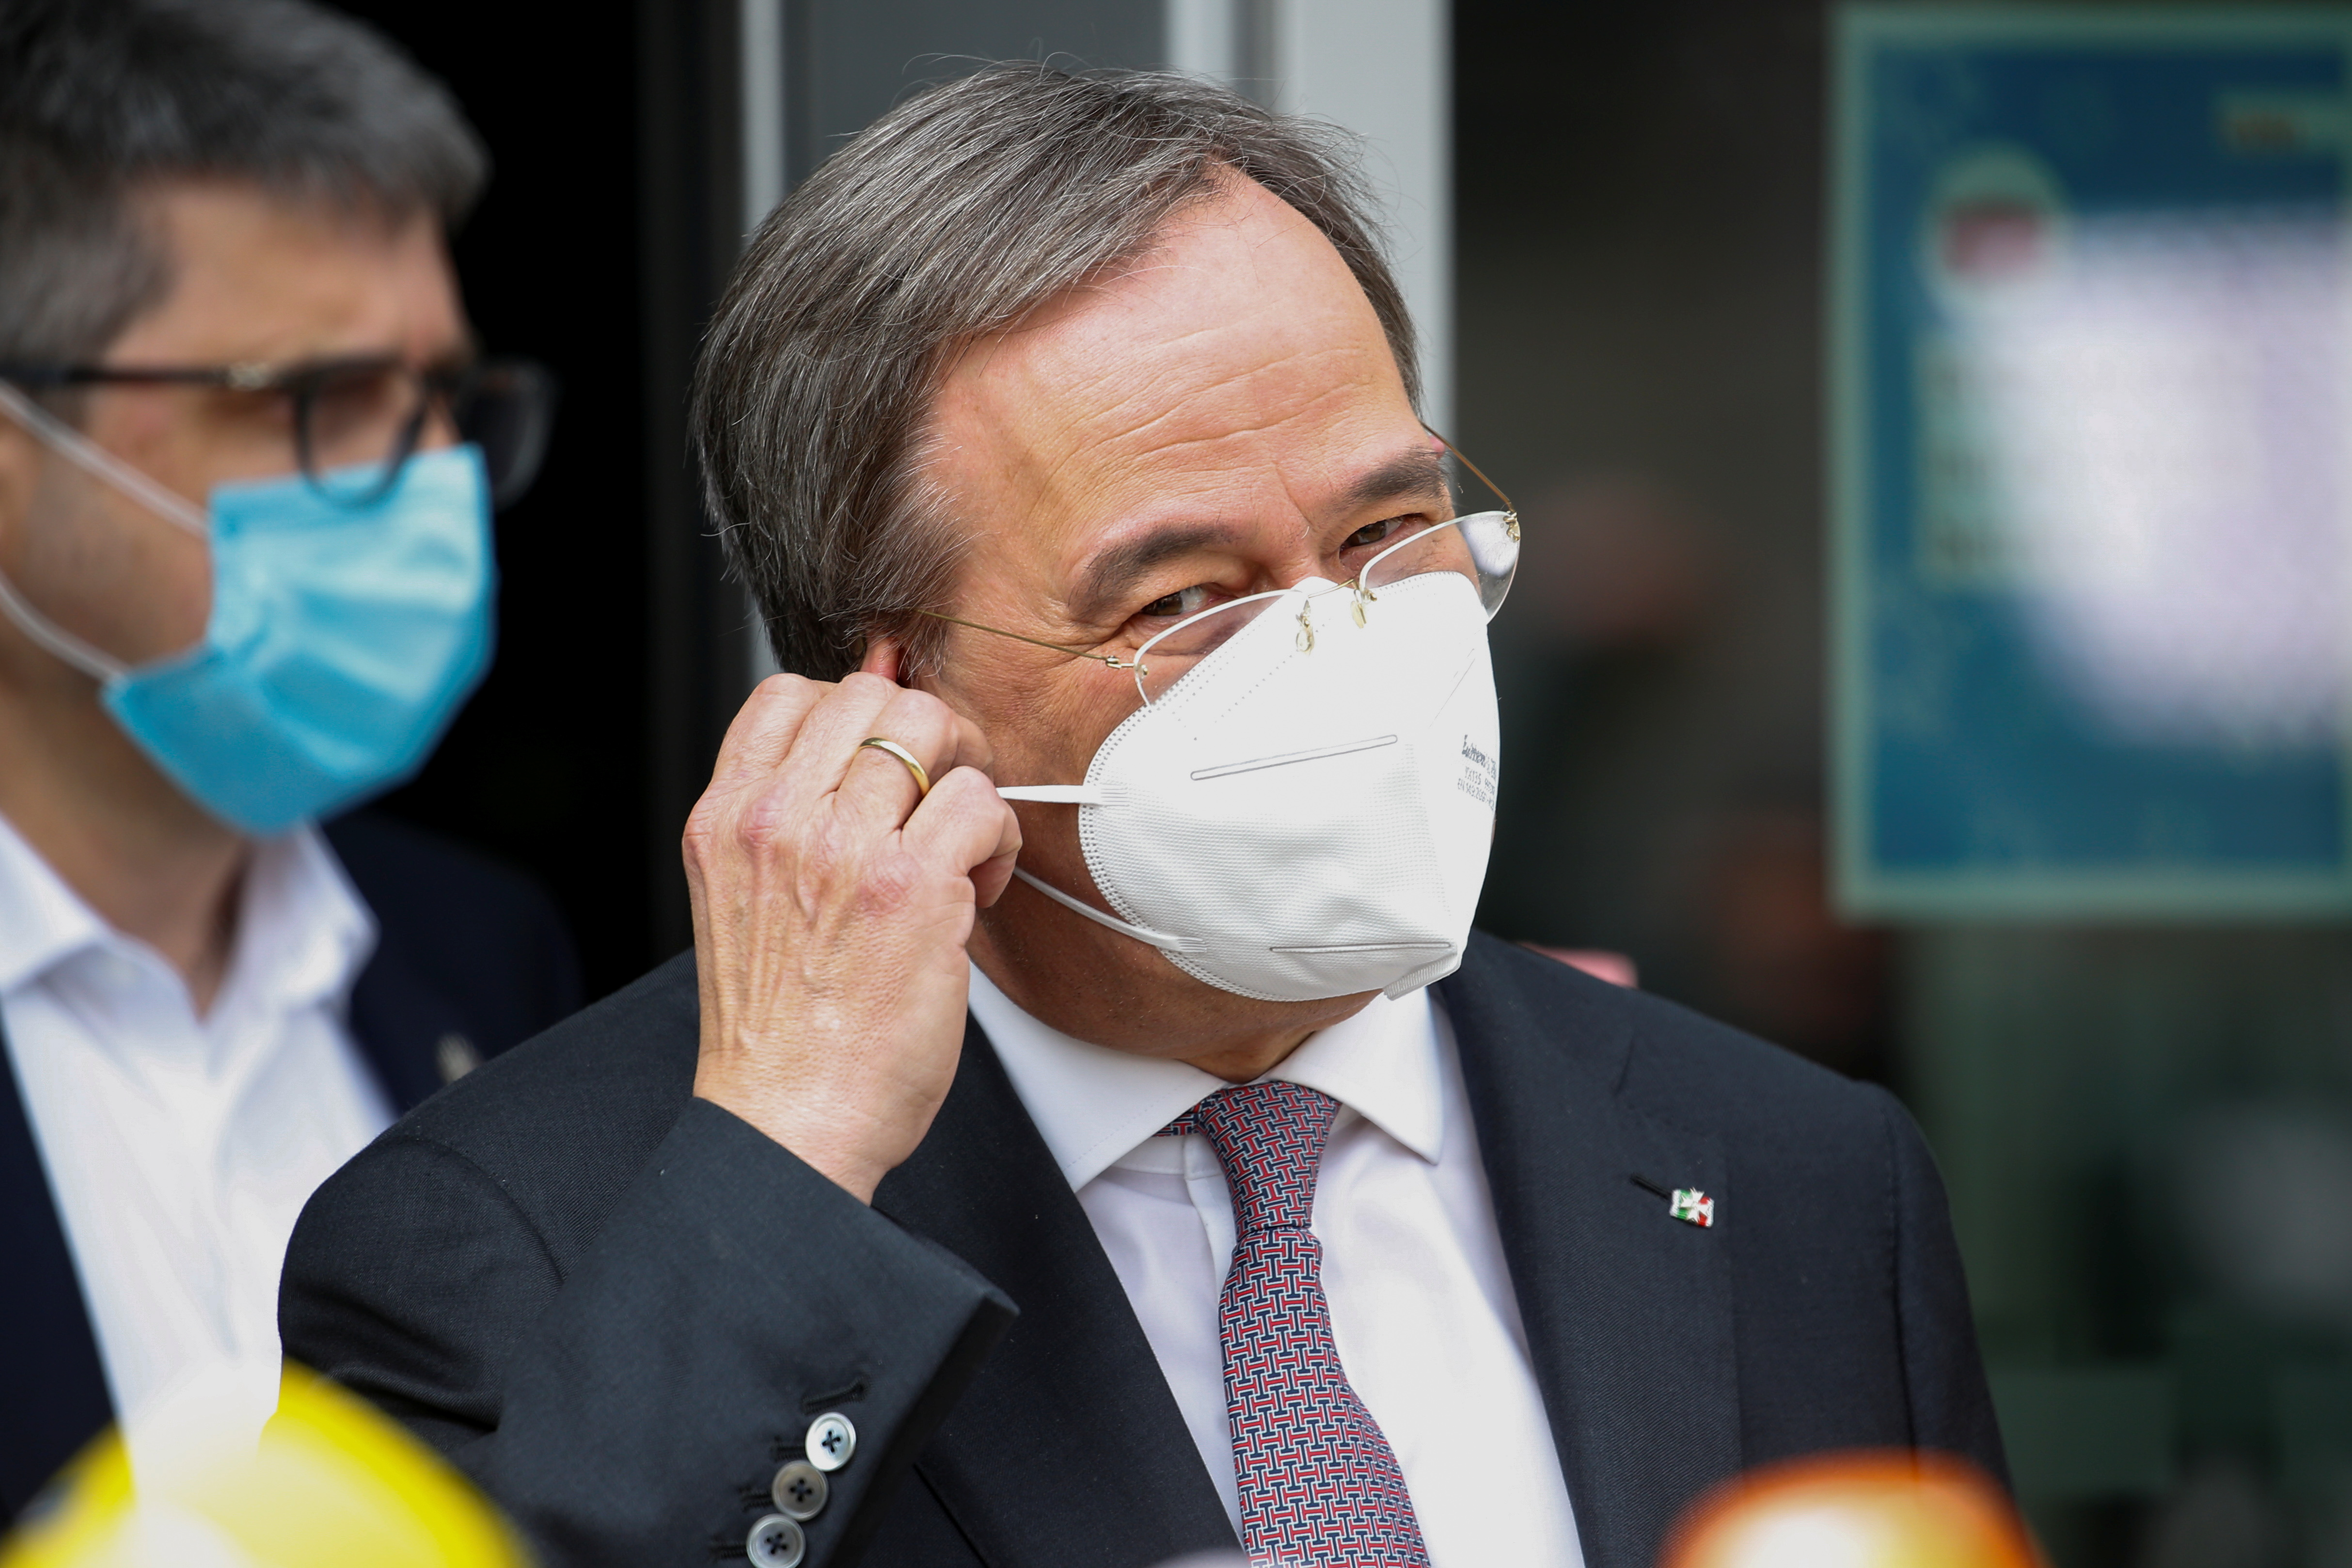 North Rhine-Westphalia's State Premier and head of Germany's conservative Christian Democratic Union (CDU) party Armin Laschet adjusts his face mask as he leaves after meetings at the CDU headquarters in Berlin, Germany, April 19, 2021. REUTERS/Michele Tantussi